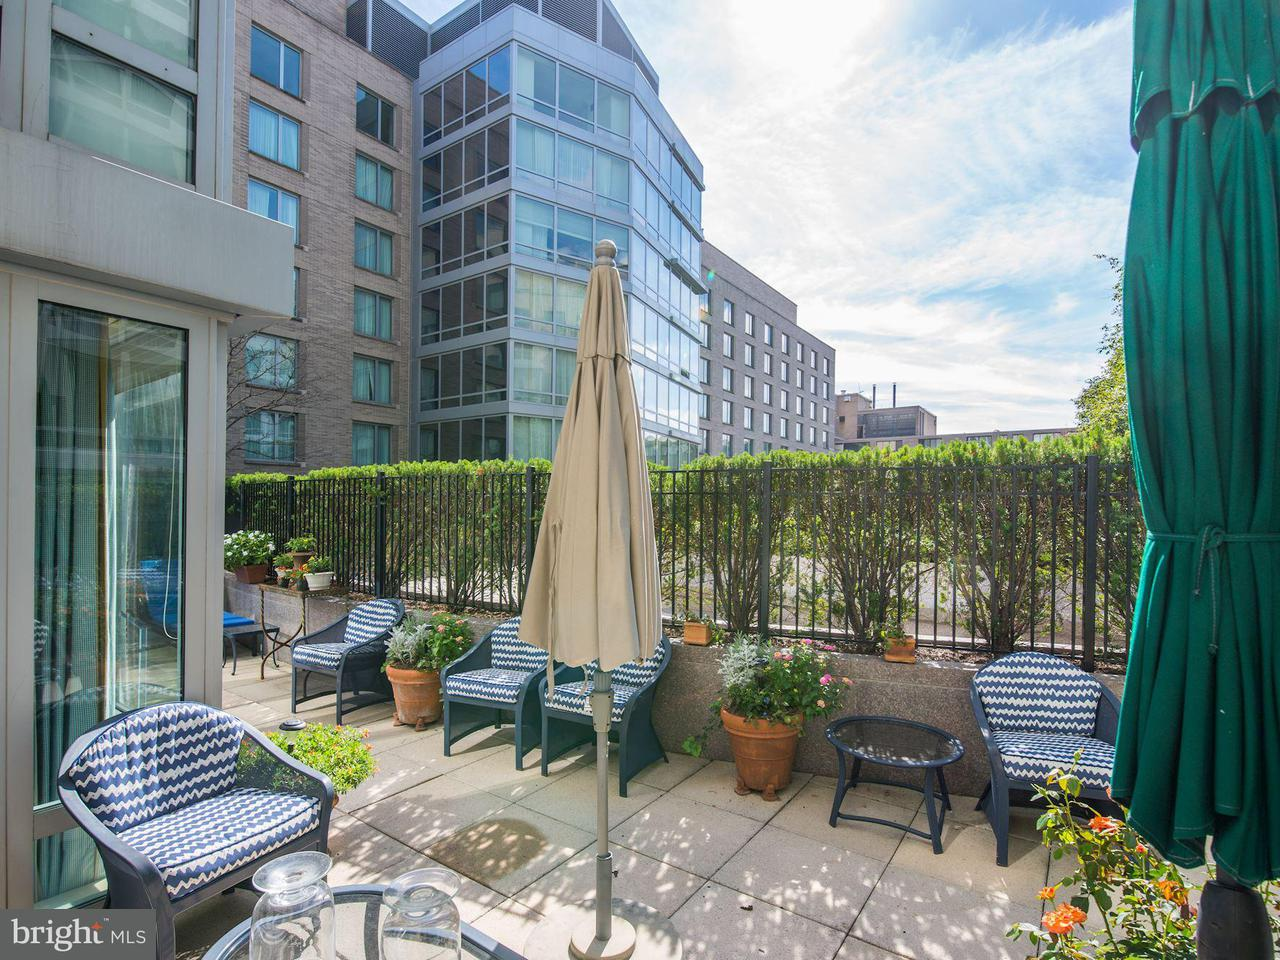 Additional photo for property listing at 1155 23rd St NW #5k  Washington, District Of Columbia 20037 United States